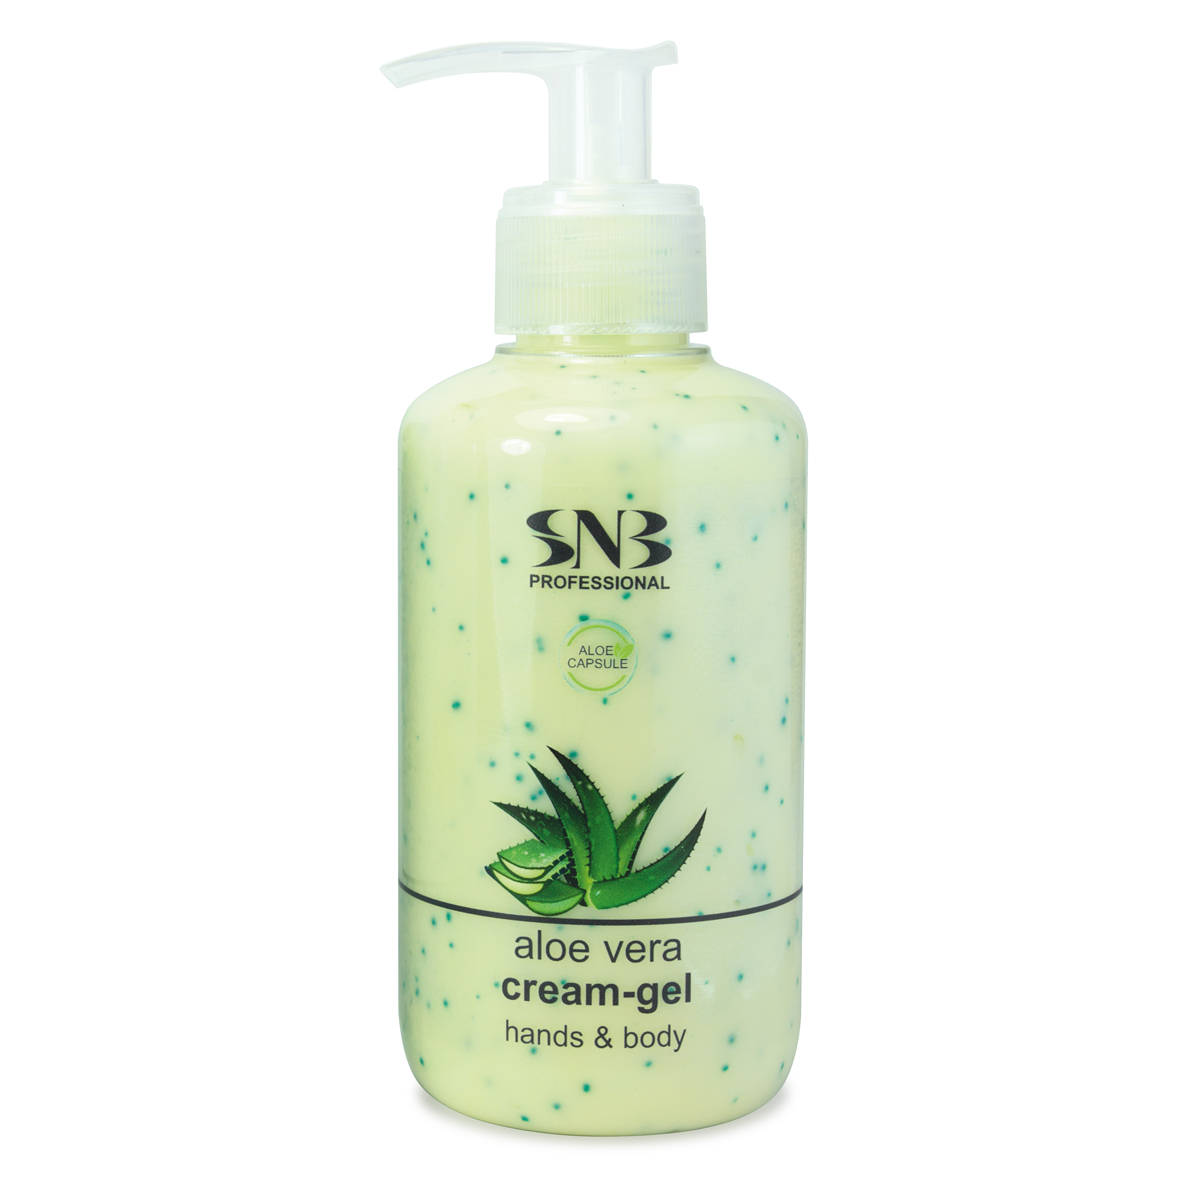 SNB Hands and Body Cream-gel with Aloe Vera Spheres 250 ml